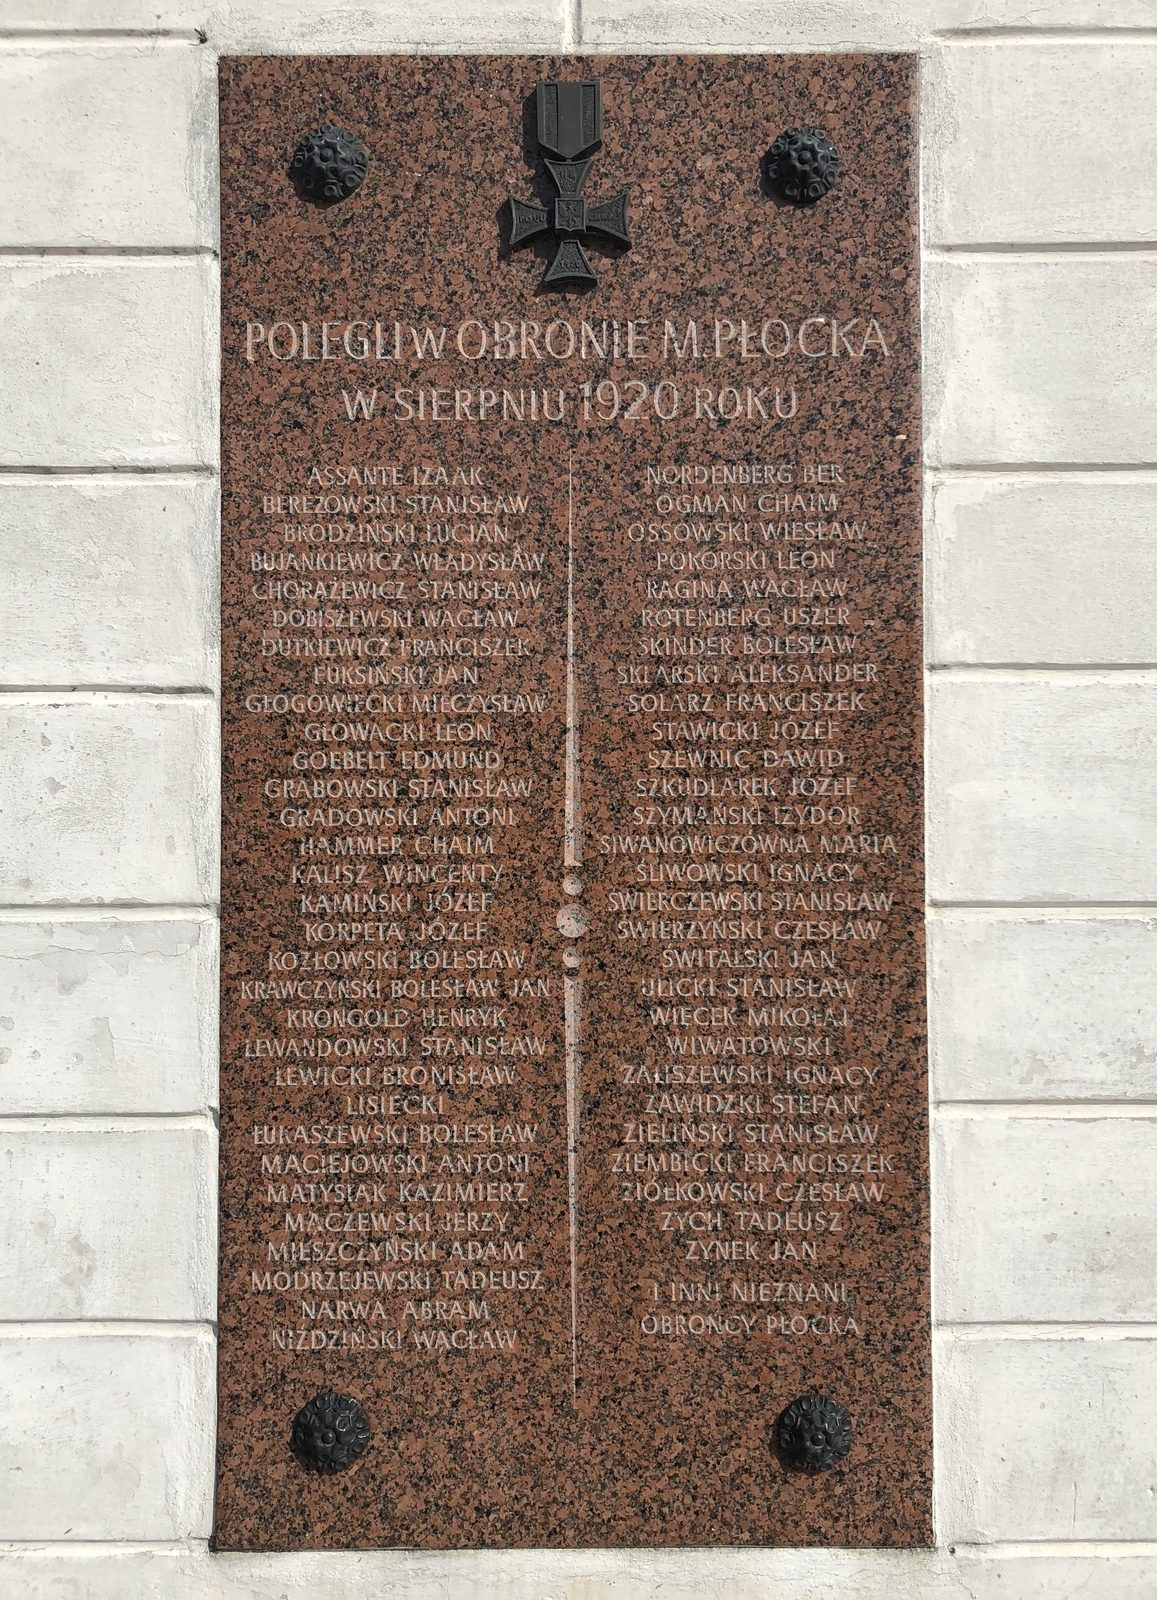 A plaque commemorating people killed in the defense of Płock in August 1920 on the guard house building (4 Tumska Street). Among the many mentioned persons, one can find the names of Jews of Płock: Izaak Assante, Chaim Hammer, Abram Narwa, Ber Nordenberg, Chaim Ogman, Uszer Rotenberg and Dawid Szenwic, JewishPlock.eu